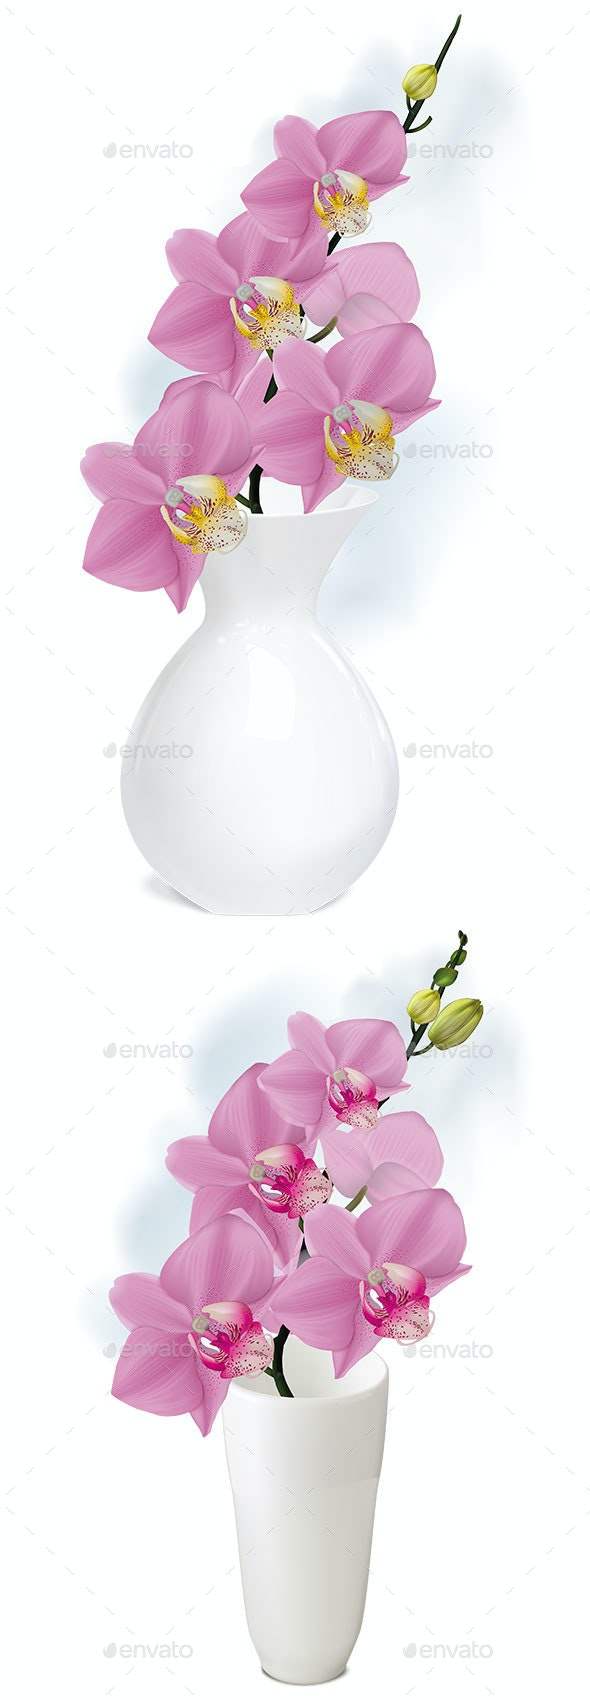 Orchid Branch with Buds in White Vase - Flowers & Plants Nature